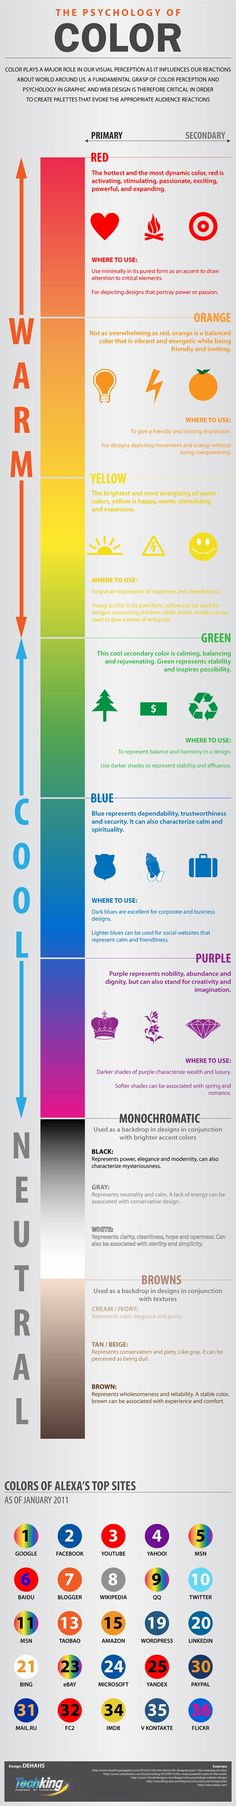 Infographic: The Psychology of Color for Web Design - Print Media Centr Visual Design, Graphisches Design, Logo Design, Design Color, Design Layouts, Flat Design, Branding Design, Design Ideas, Photoshop